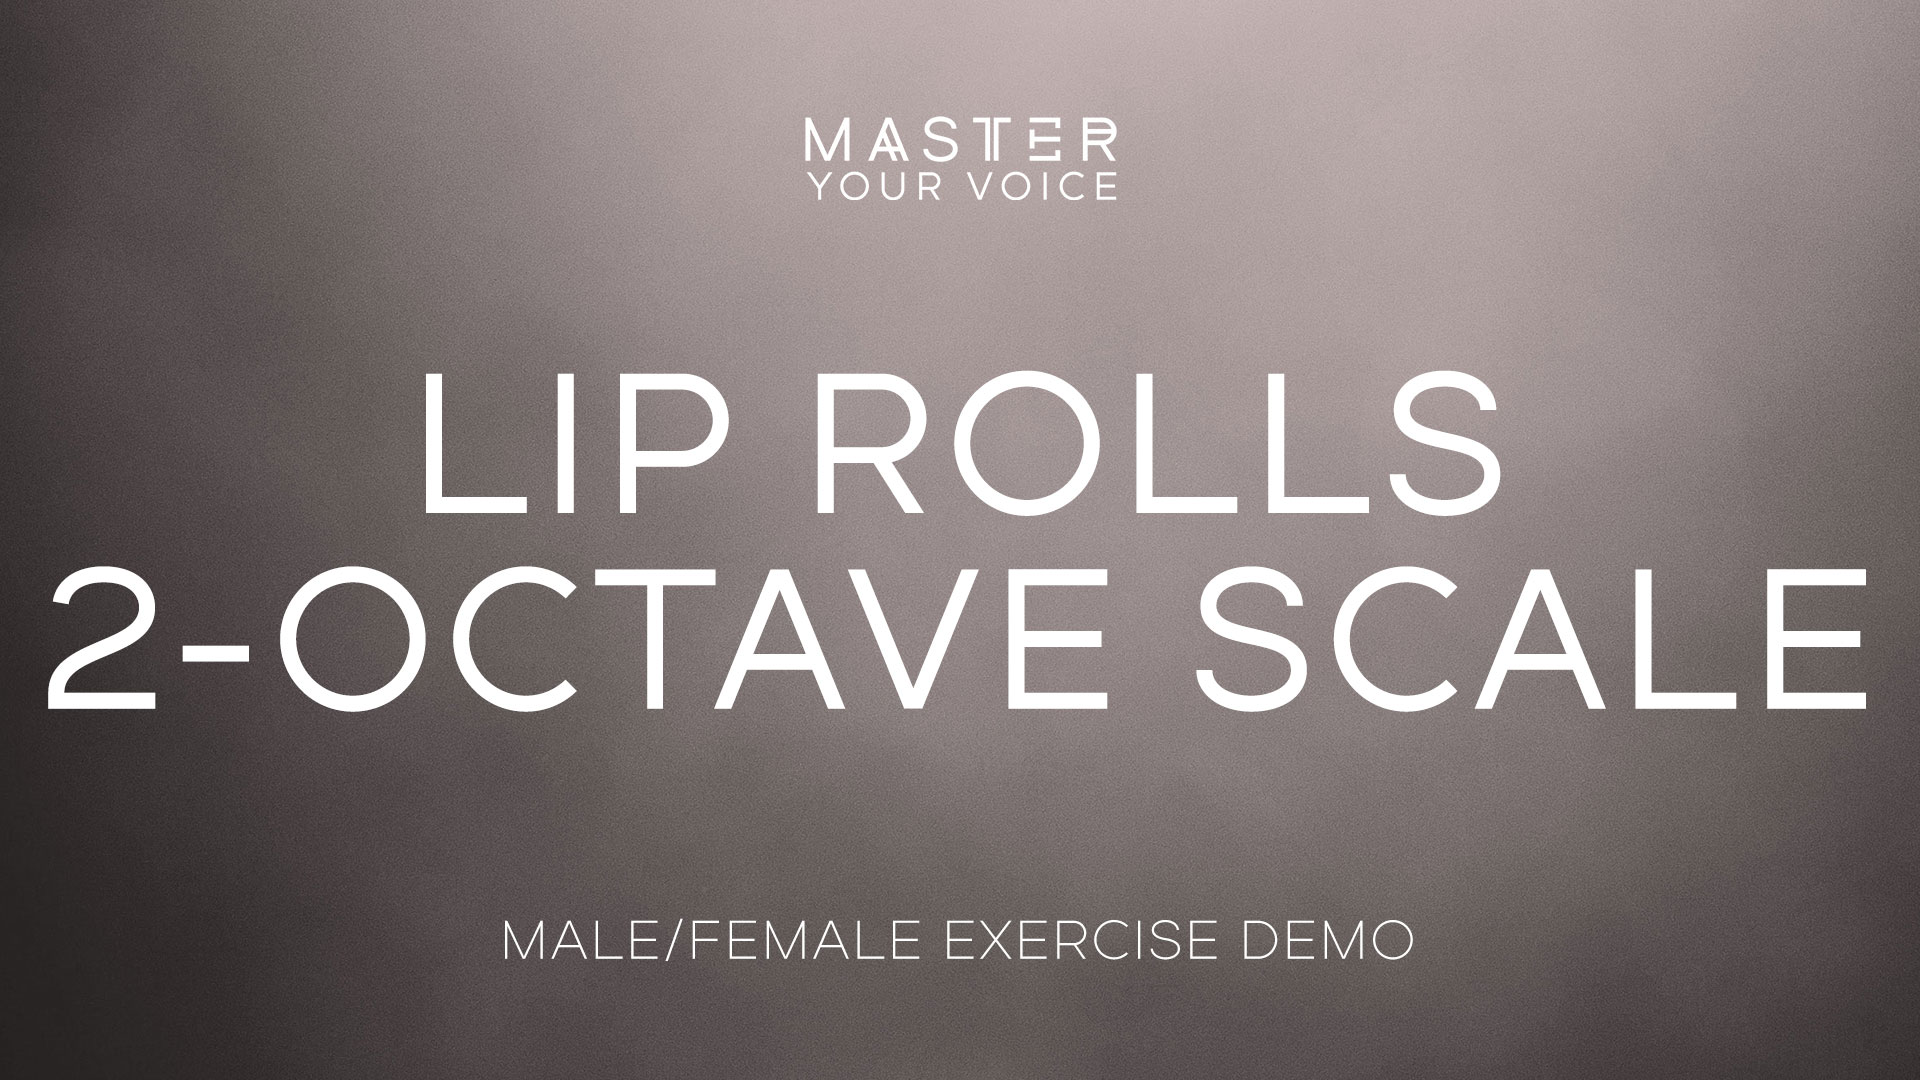 Lip Rolls 2-Octave Scale Exercise Demo